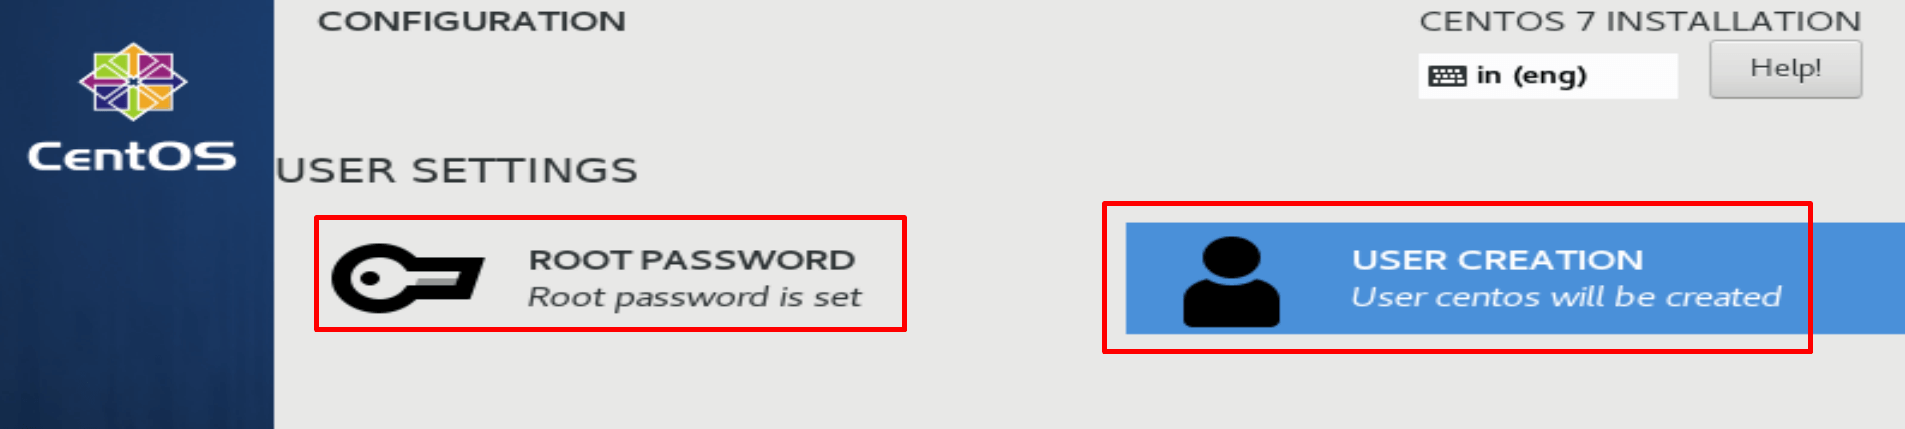 root password and user has been created during centos installation